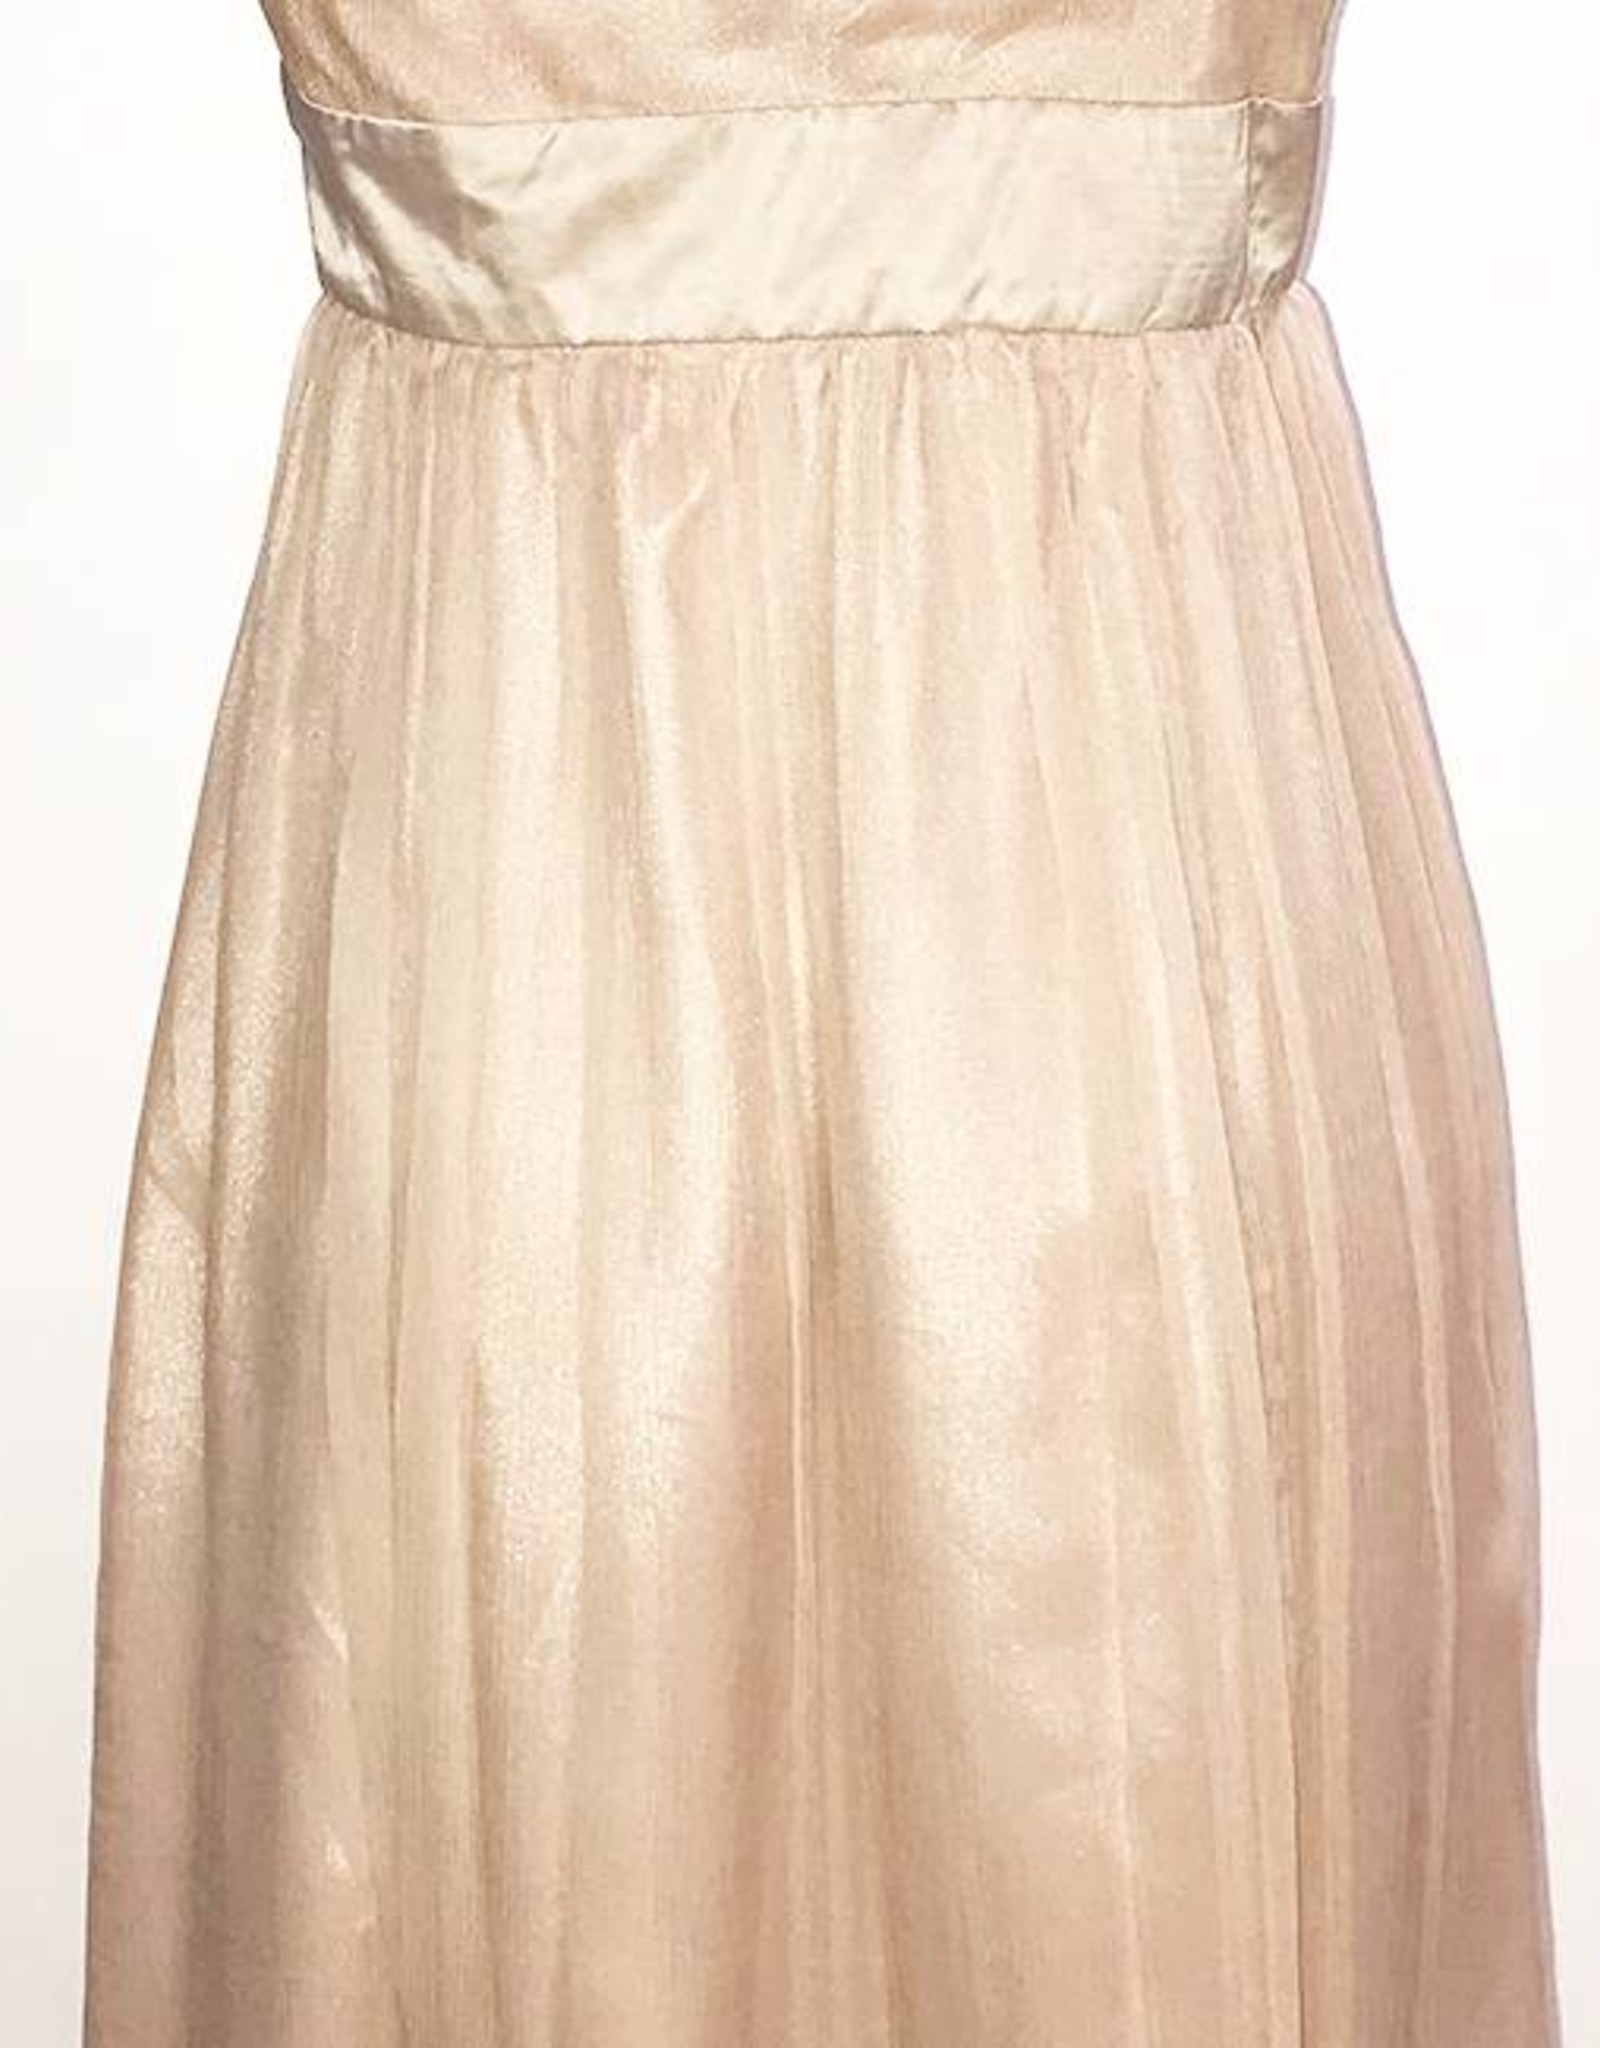 Ivy Dress in Nude